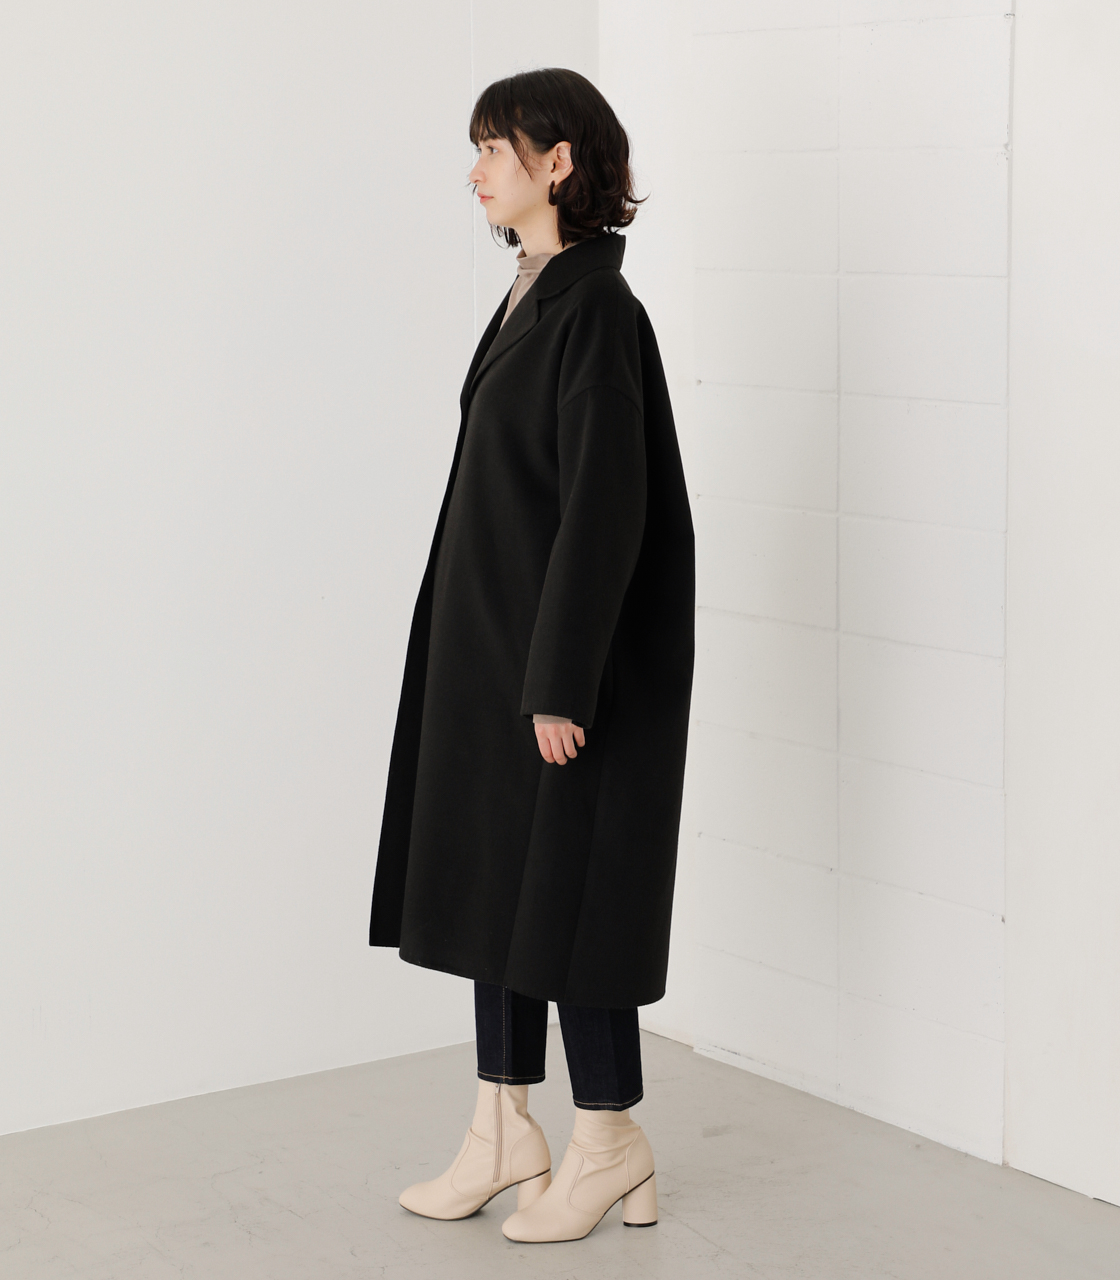 LOOSE CHESTER REVER COAT/ルーズチェスターリバーコート 詳細画像 BLK 5